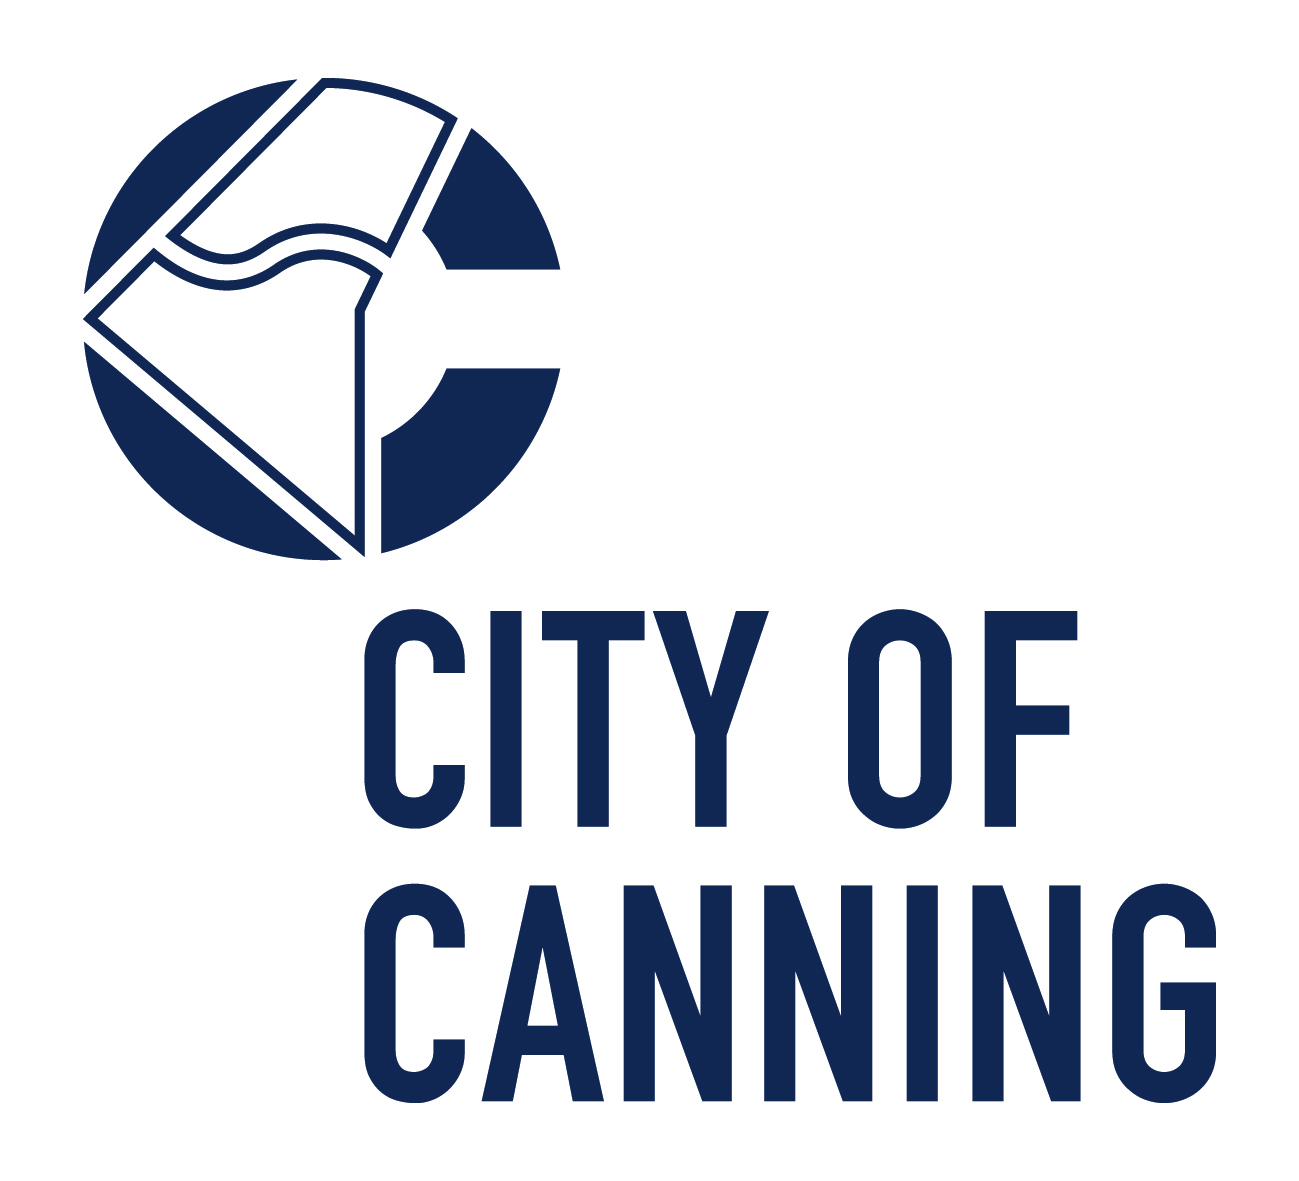 City of Canning - Supporting Partner